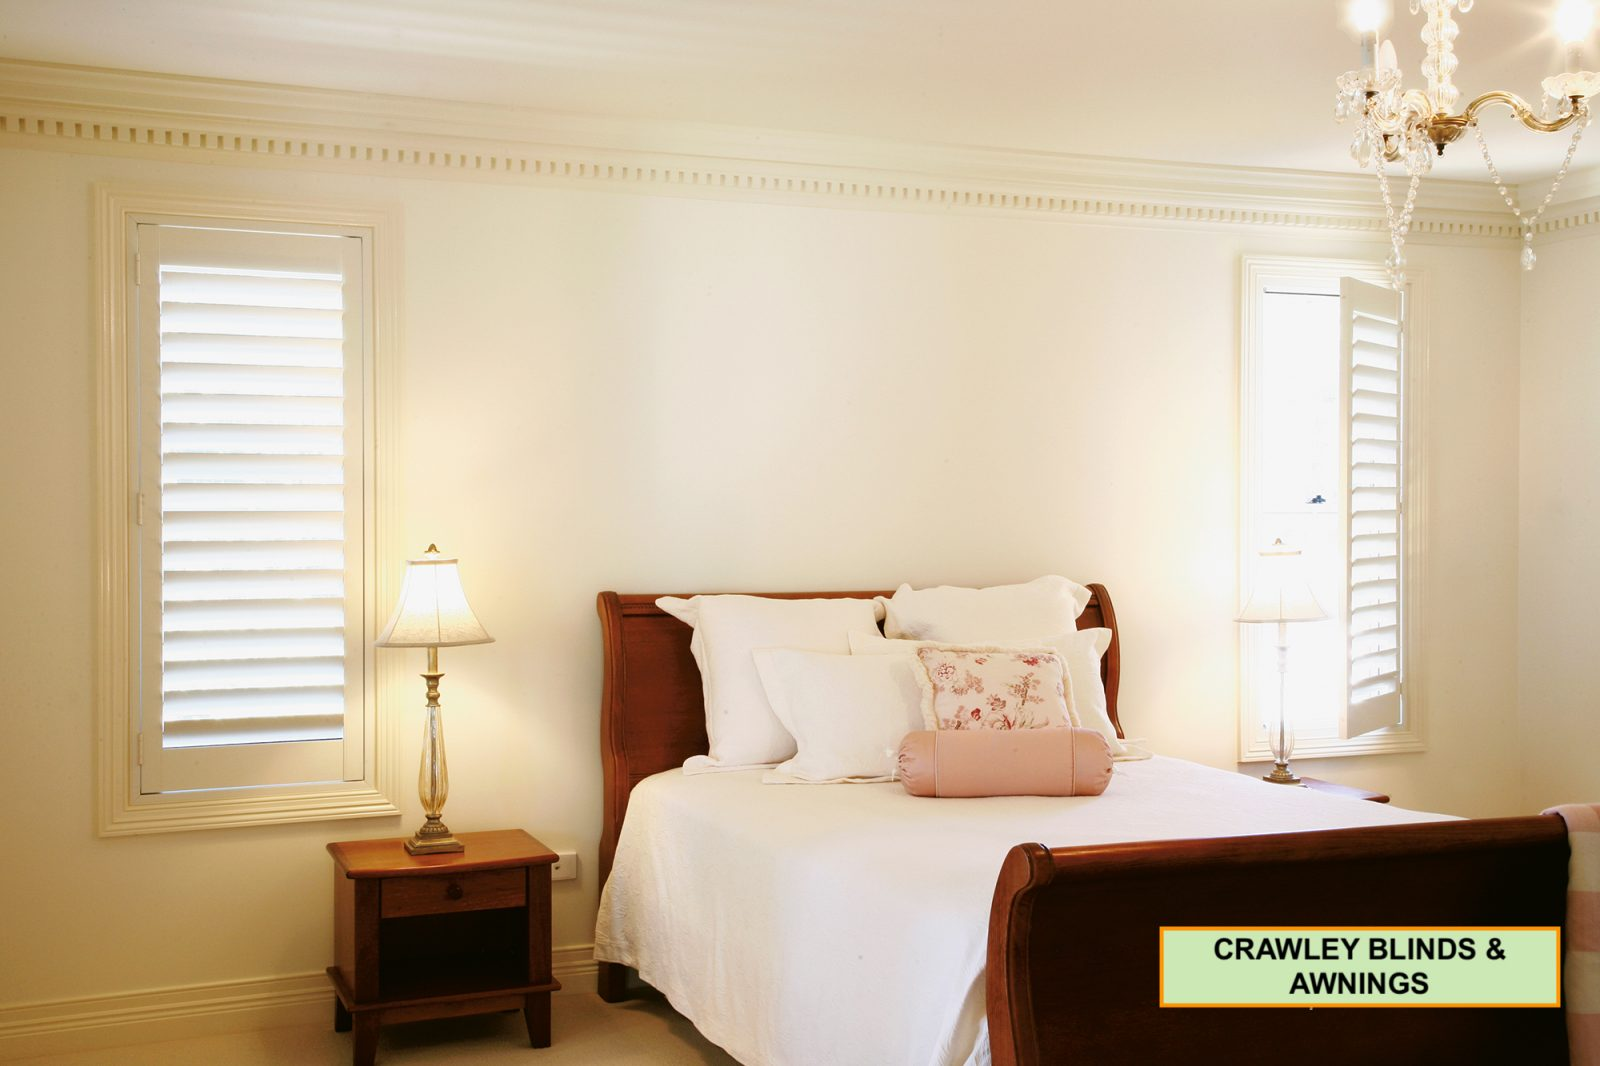 Townsville Shutter Specialists - Blinds, Awnings, Shutters ...